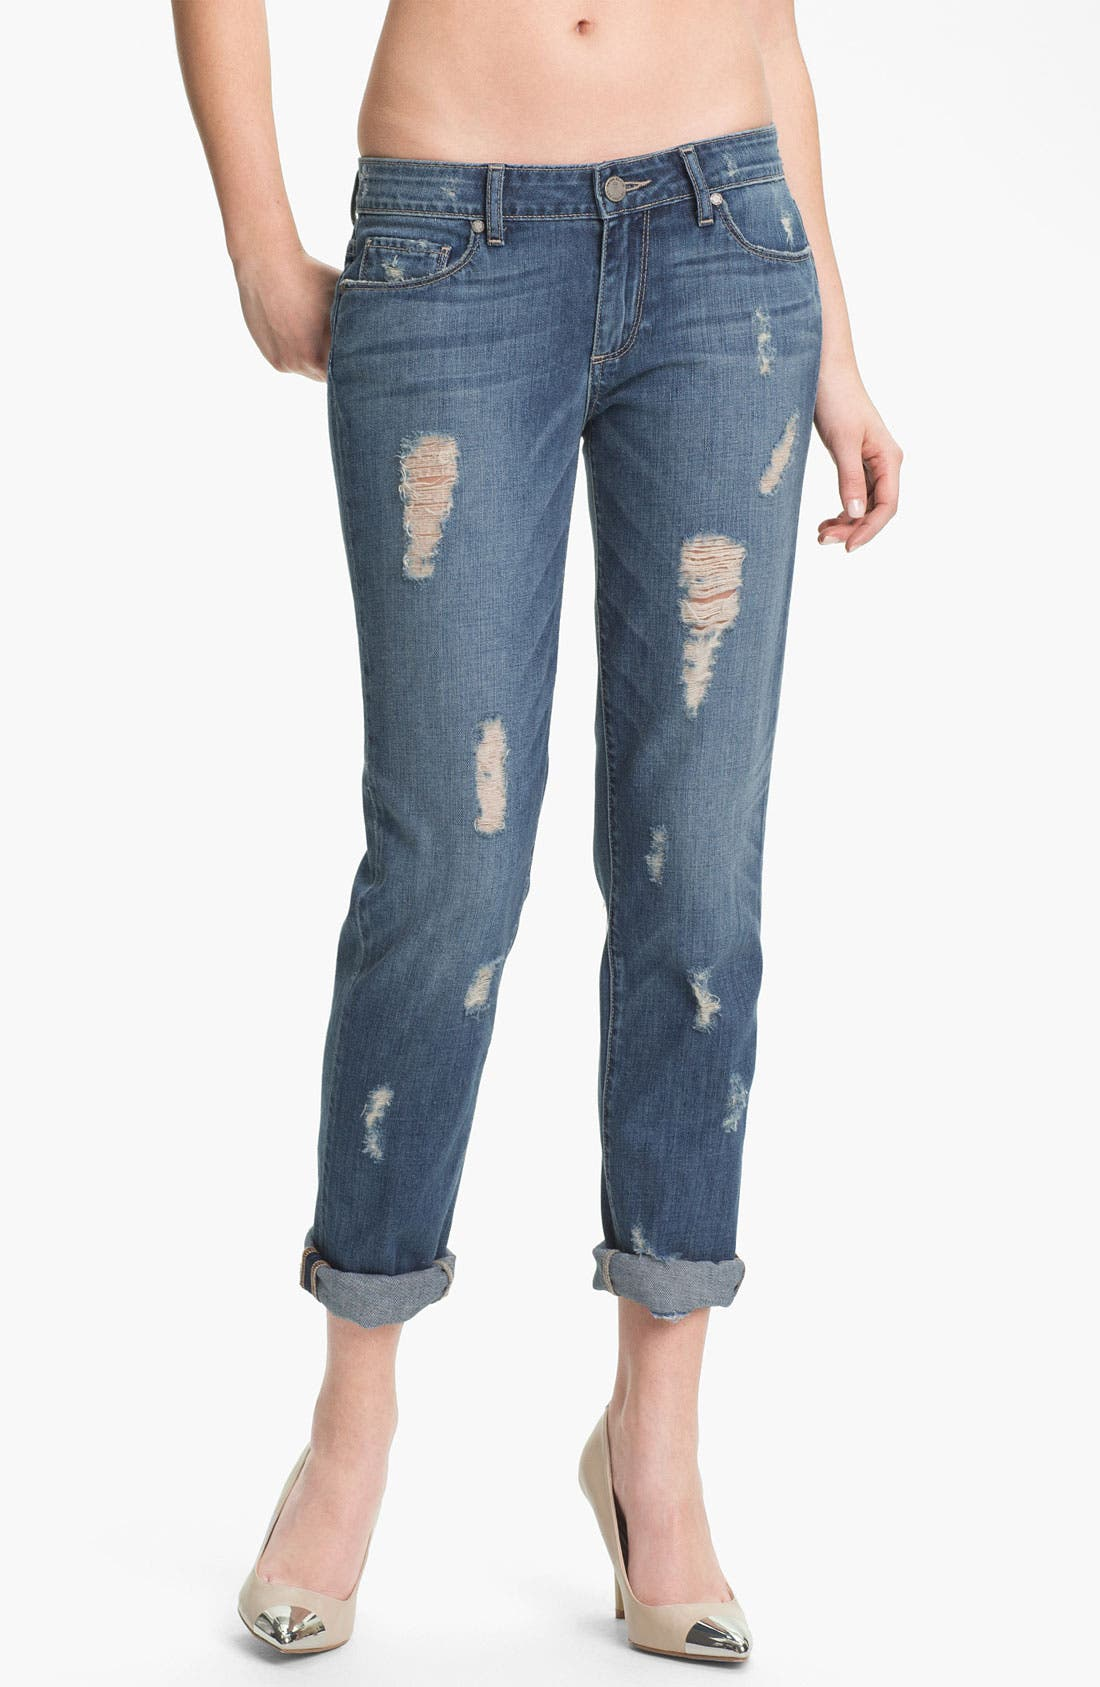 Denim 'Jimmy Jimmy' Distressed Skinny Jeans,                             Main thumbnail 1, color,